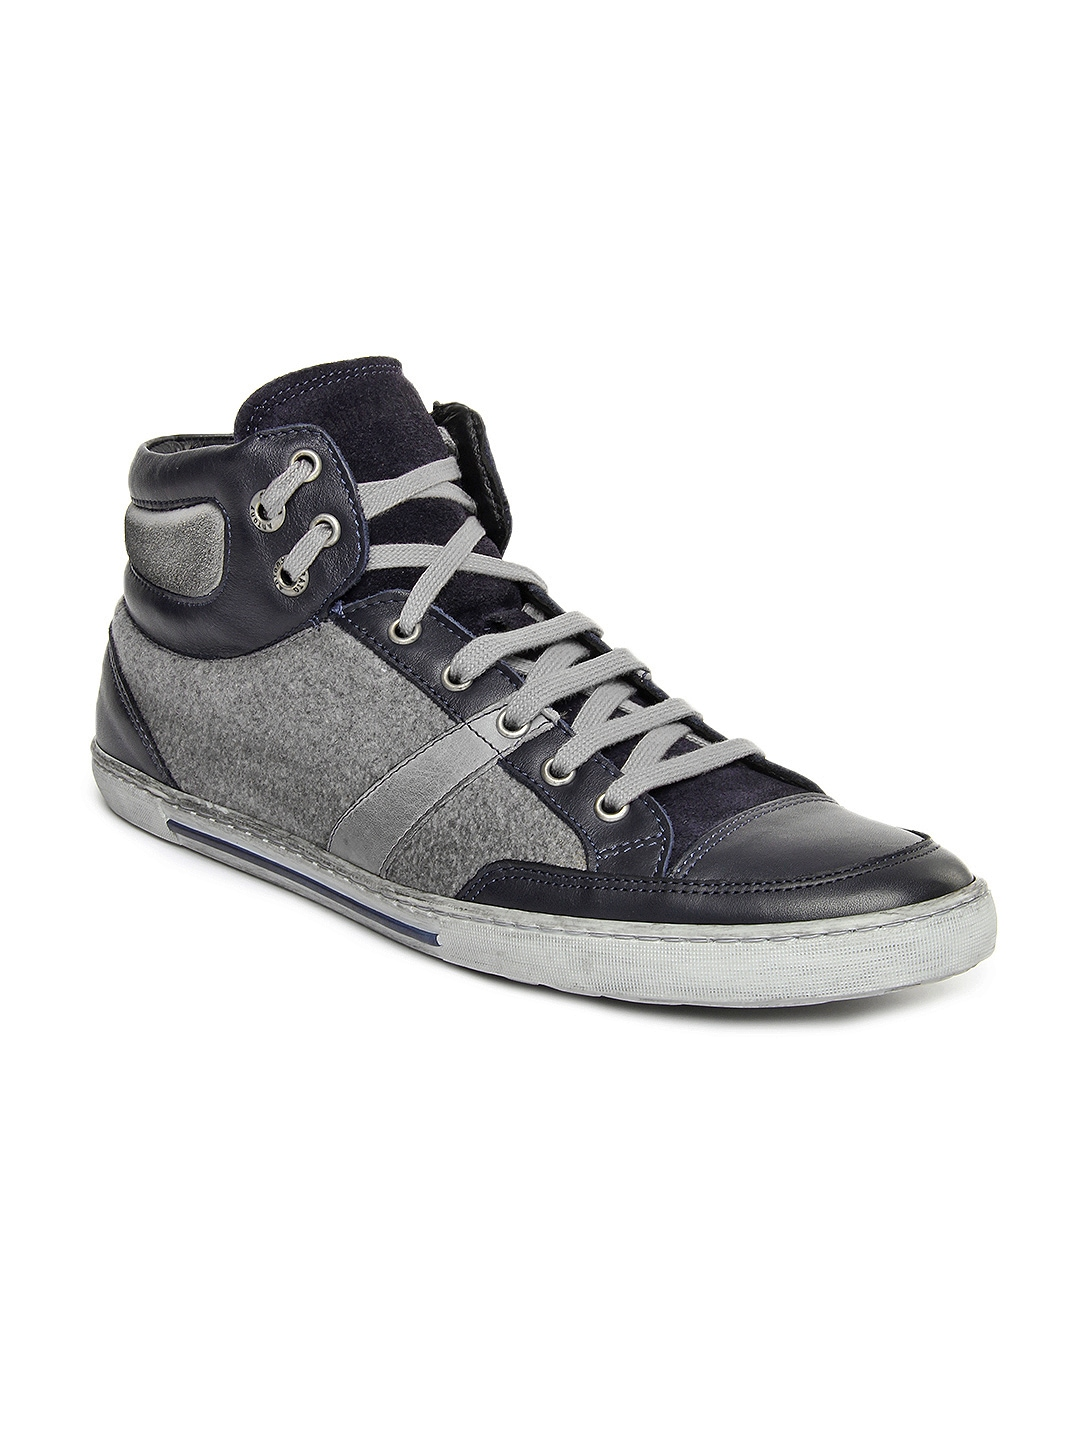 myntra antony morato vintage men blue grey sneakers 557096 buy myntra antony morato casual. Black Bedroom Furniture Sets. Home Design Ideas